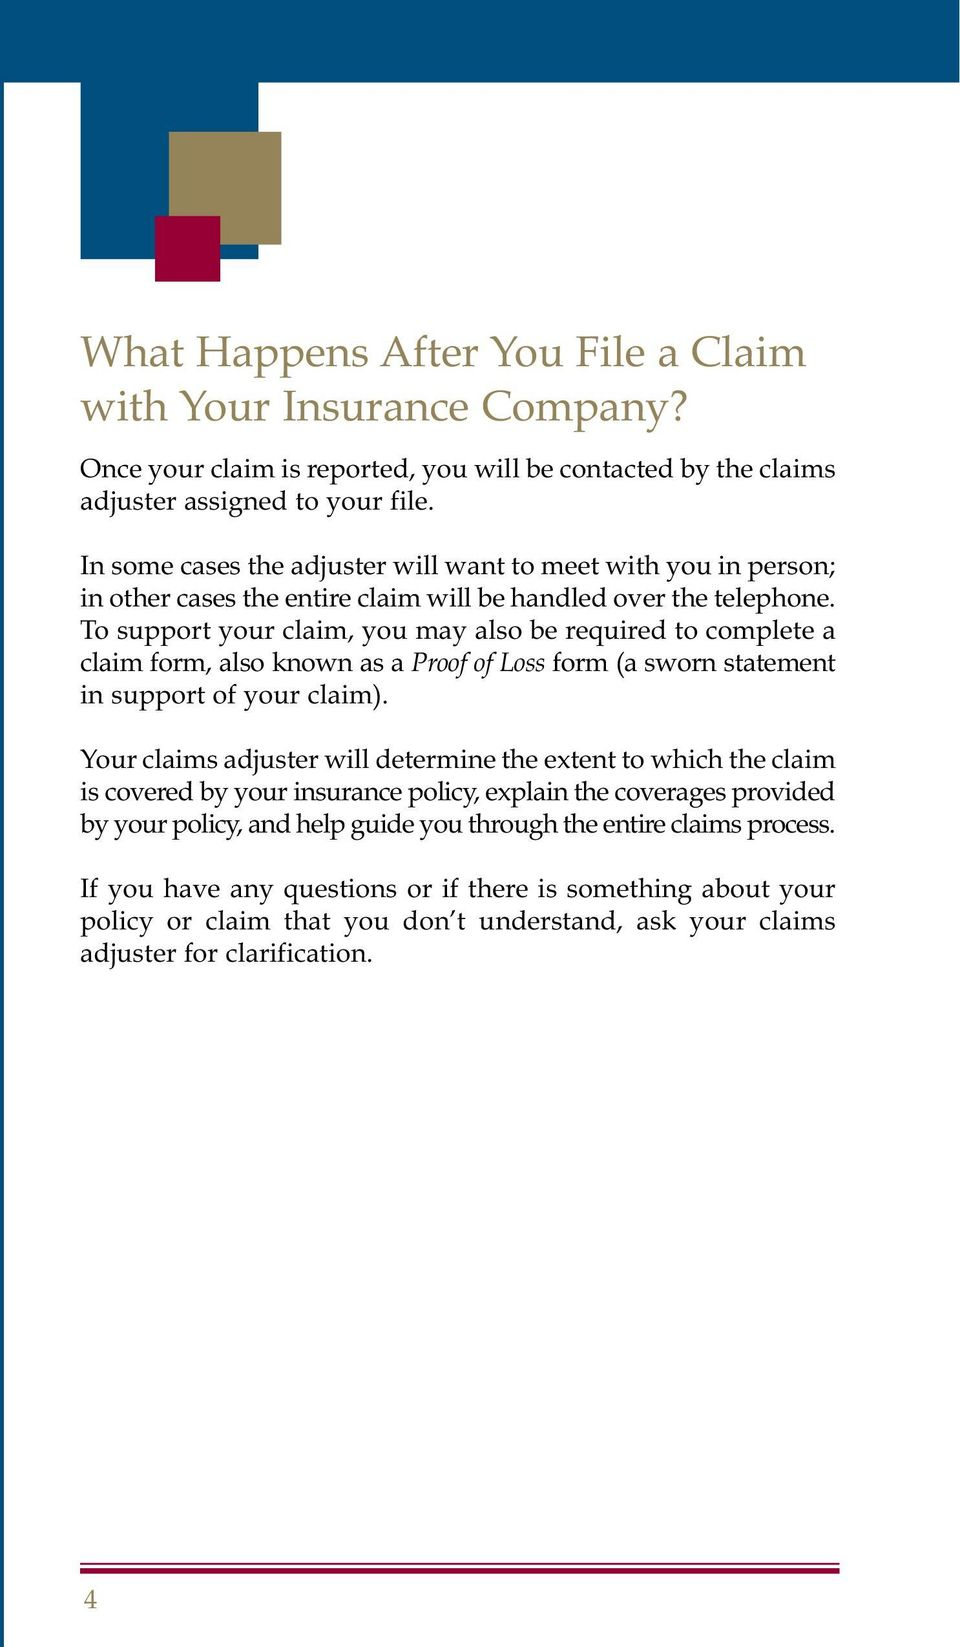 To support your claim, you may also be required to complete a claim form, also known as a Proof of Loss form (a sworn statement in support of your claim).